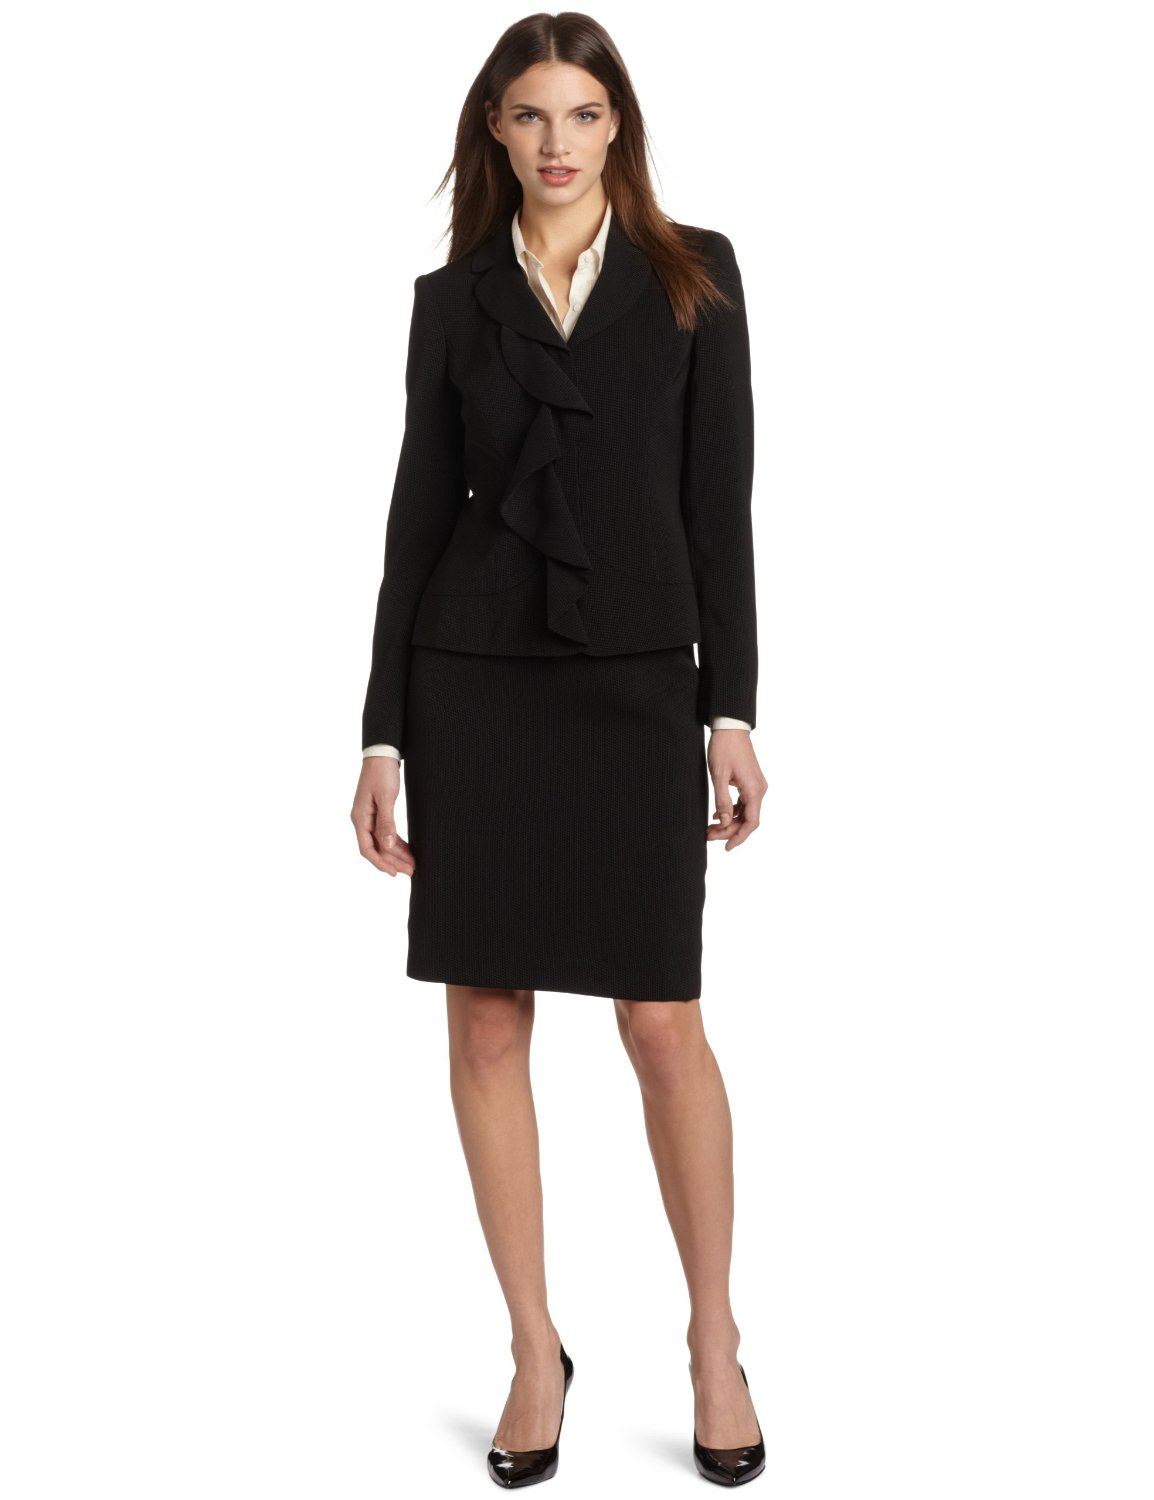 Elegant Clothing Should Be Attractive Without Being A Distraction Inappropriate Attire Will Direct Attention Away From The Employees Message And Skills Here Are A Few Essential Items Every Corporate Wardrobe Should Contain Women Must Have A